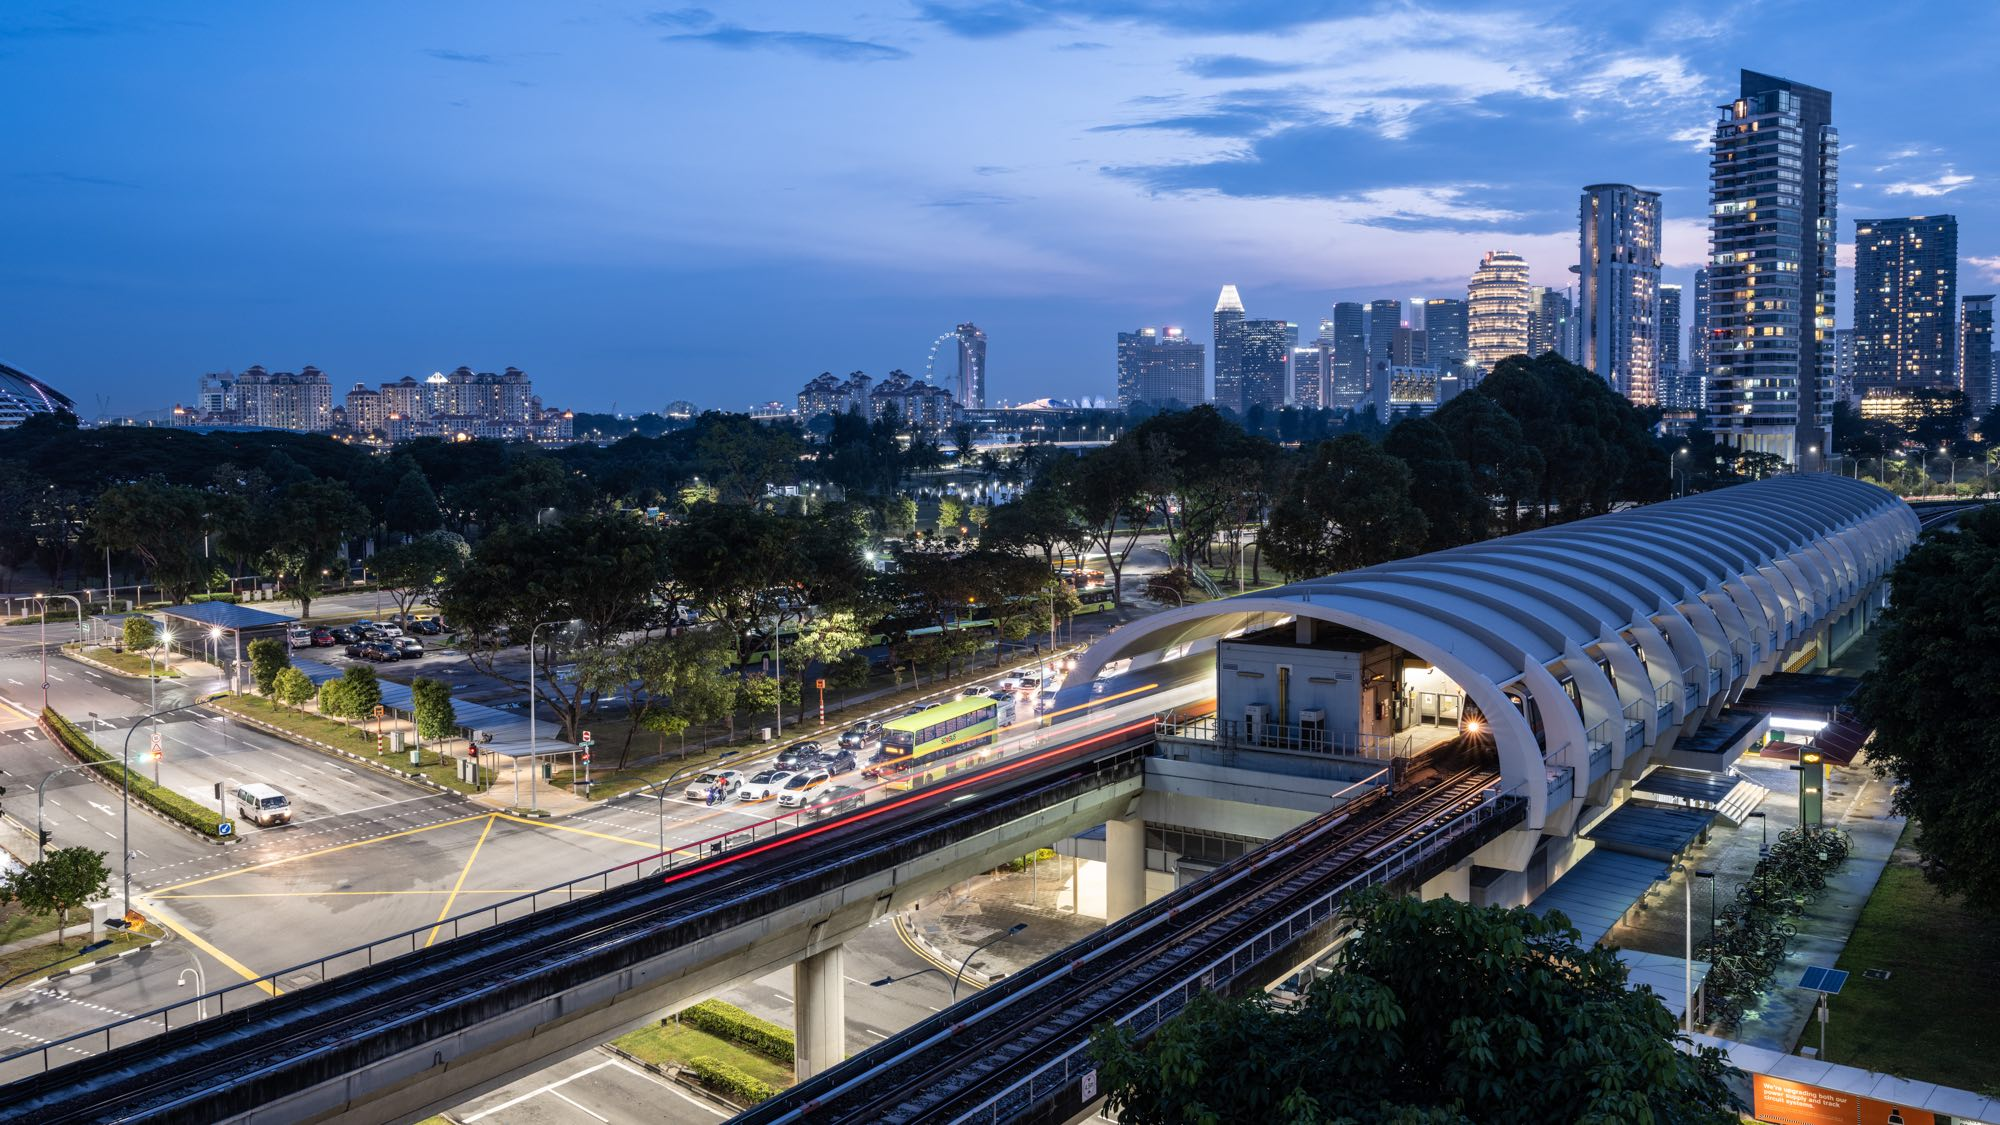 MRT Commercial Photography Singapore Coco Creative Studio Skyline-1